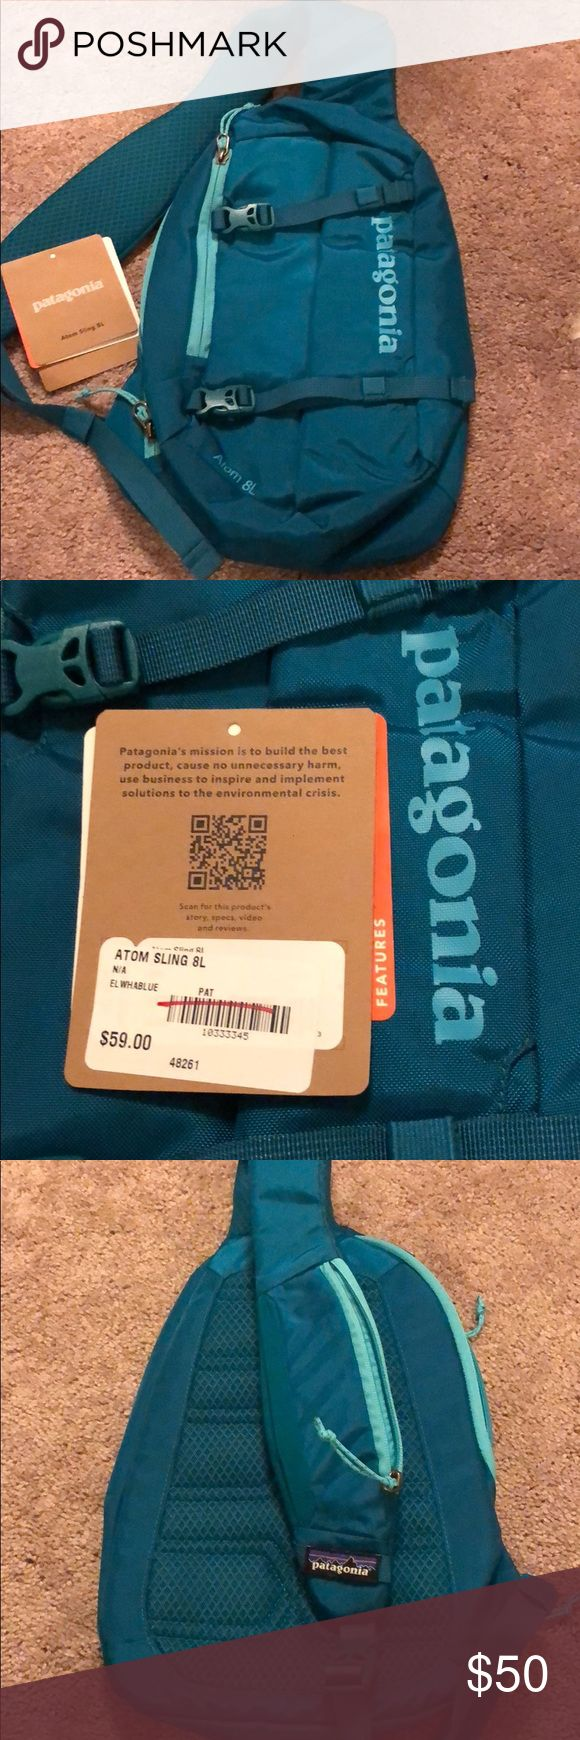 Patagonia Atom Sling 8L NEW WITH TAGS!!!!! From a smoke free home — this is the newer version atom sling. This has never been carried. I love it just decided I wanted a different bag! Patagonia Bags Crossbody Bags